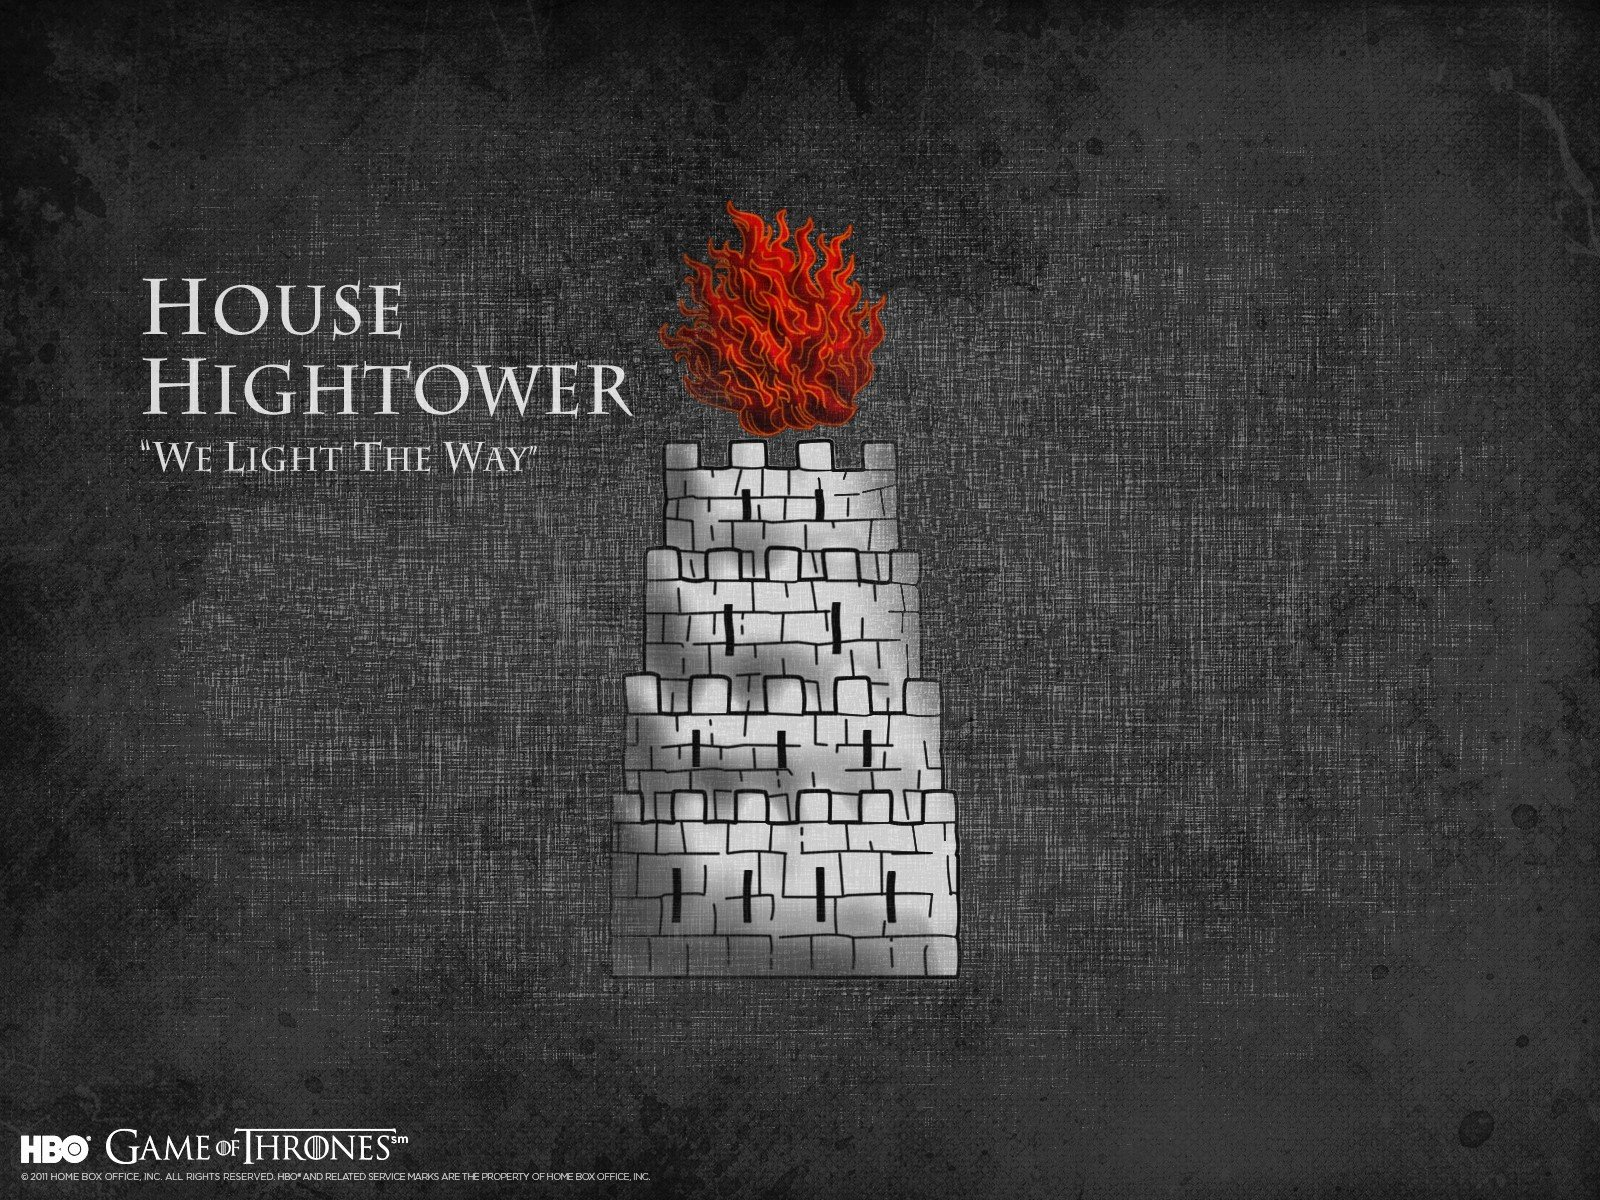 game of thrones a song of ice and fire house tv series hbo house hightower wallpaper 1600x1200. Black Bedroom Furniture Sets. Home Design Ideas